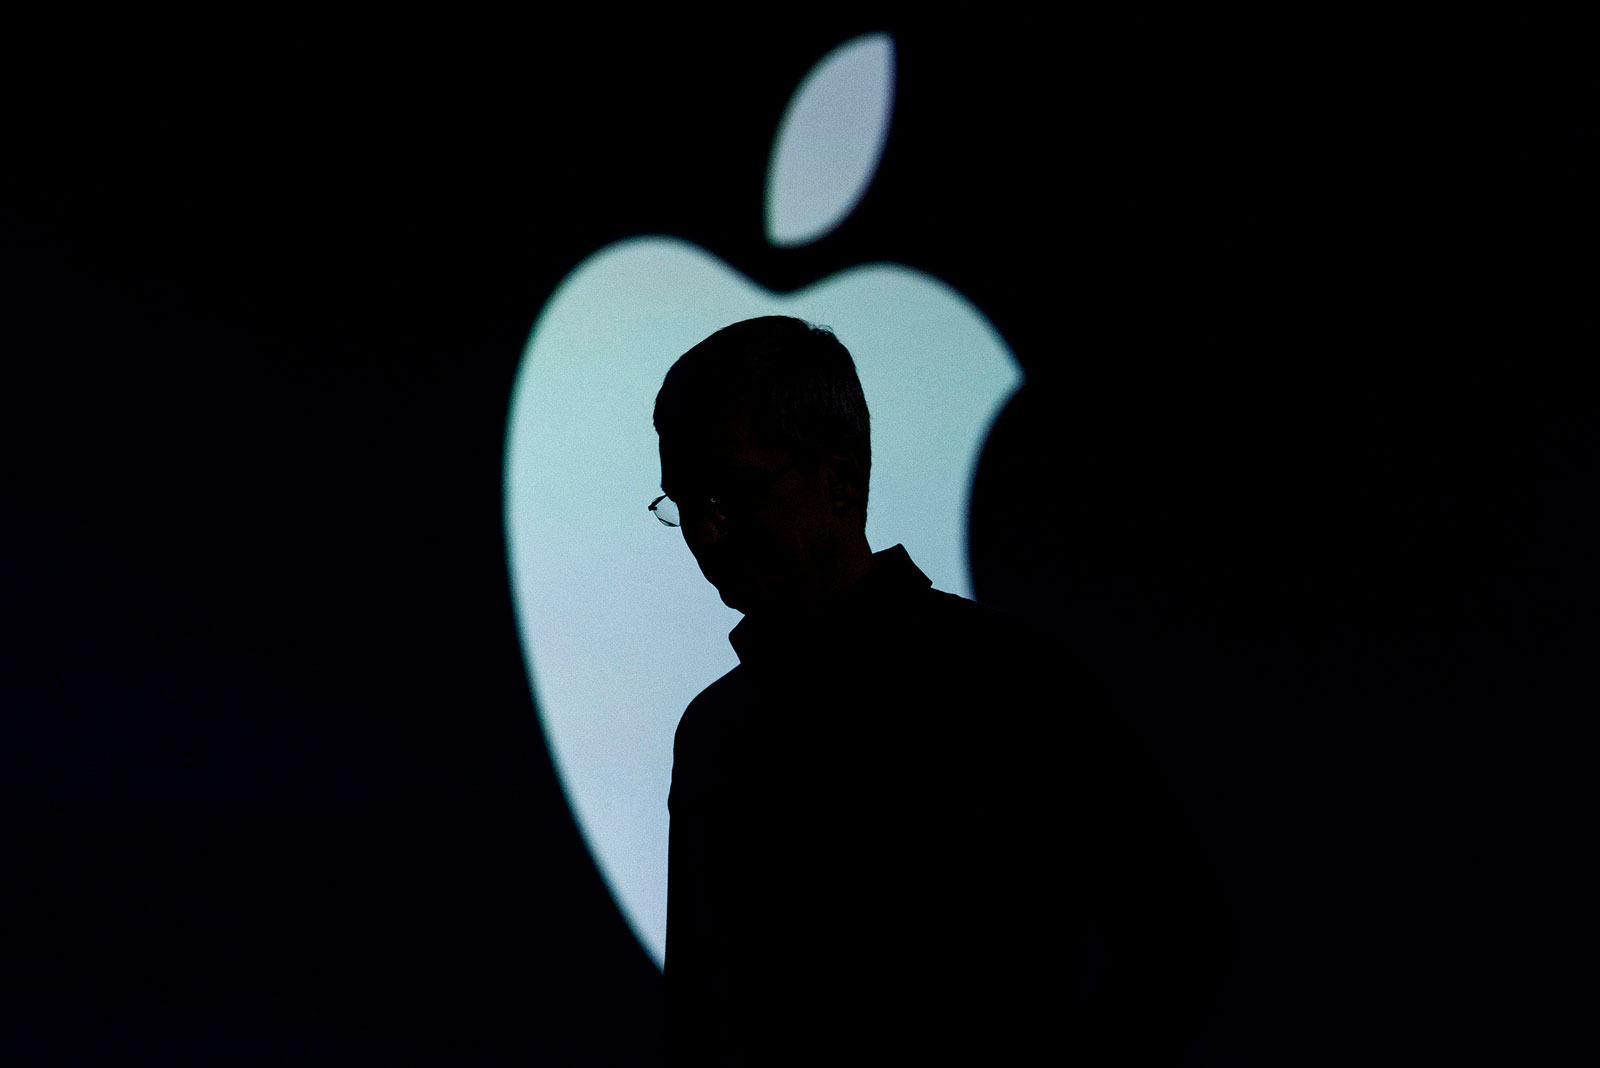 The silhouette of Tim Cook, chief executive officer of Apple